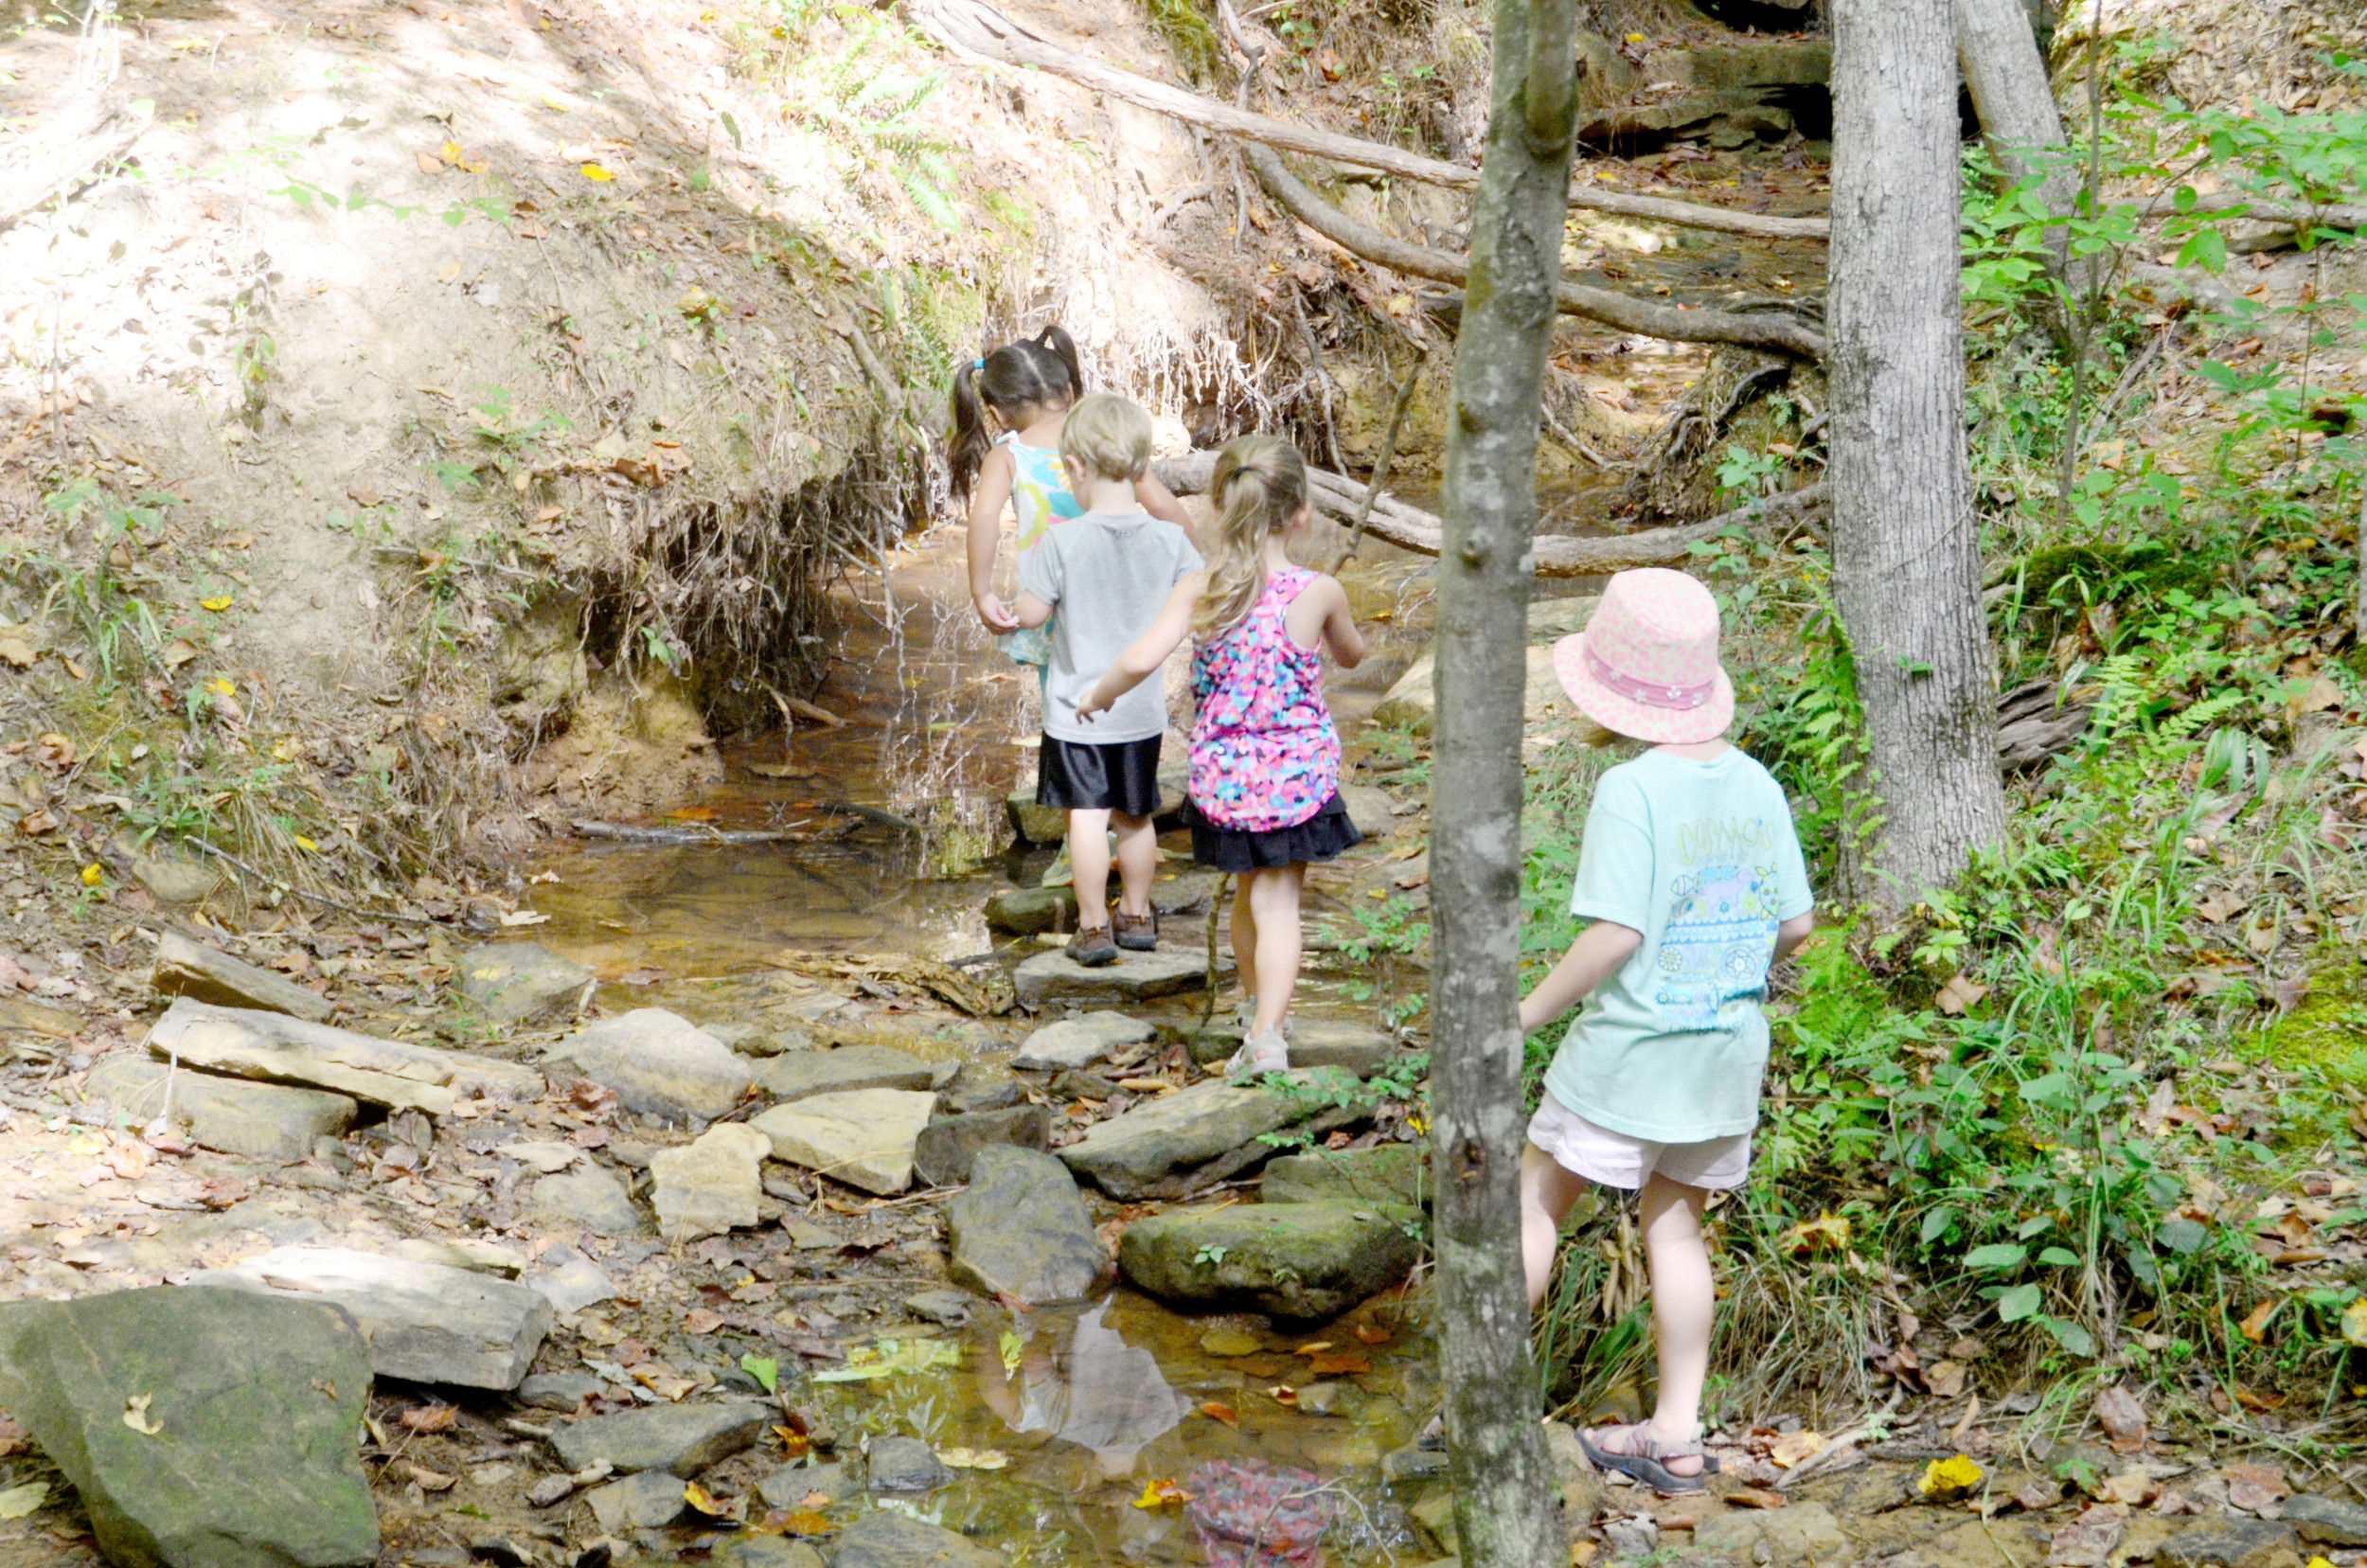 Magnolia Nature School students Lucy, Andrew, Abby and Adeline play in a small stream at Camp McDowell as they learn about nature. Daily Mountain Eagle - Lea Rizzo